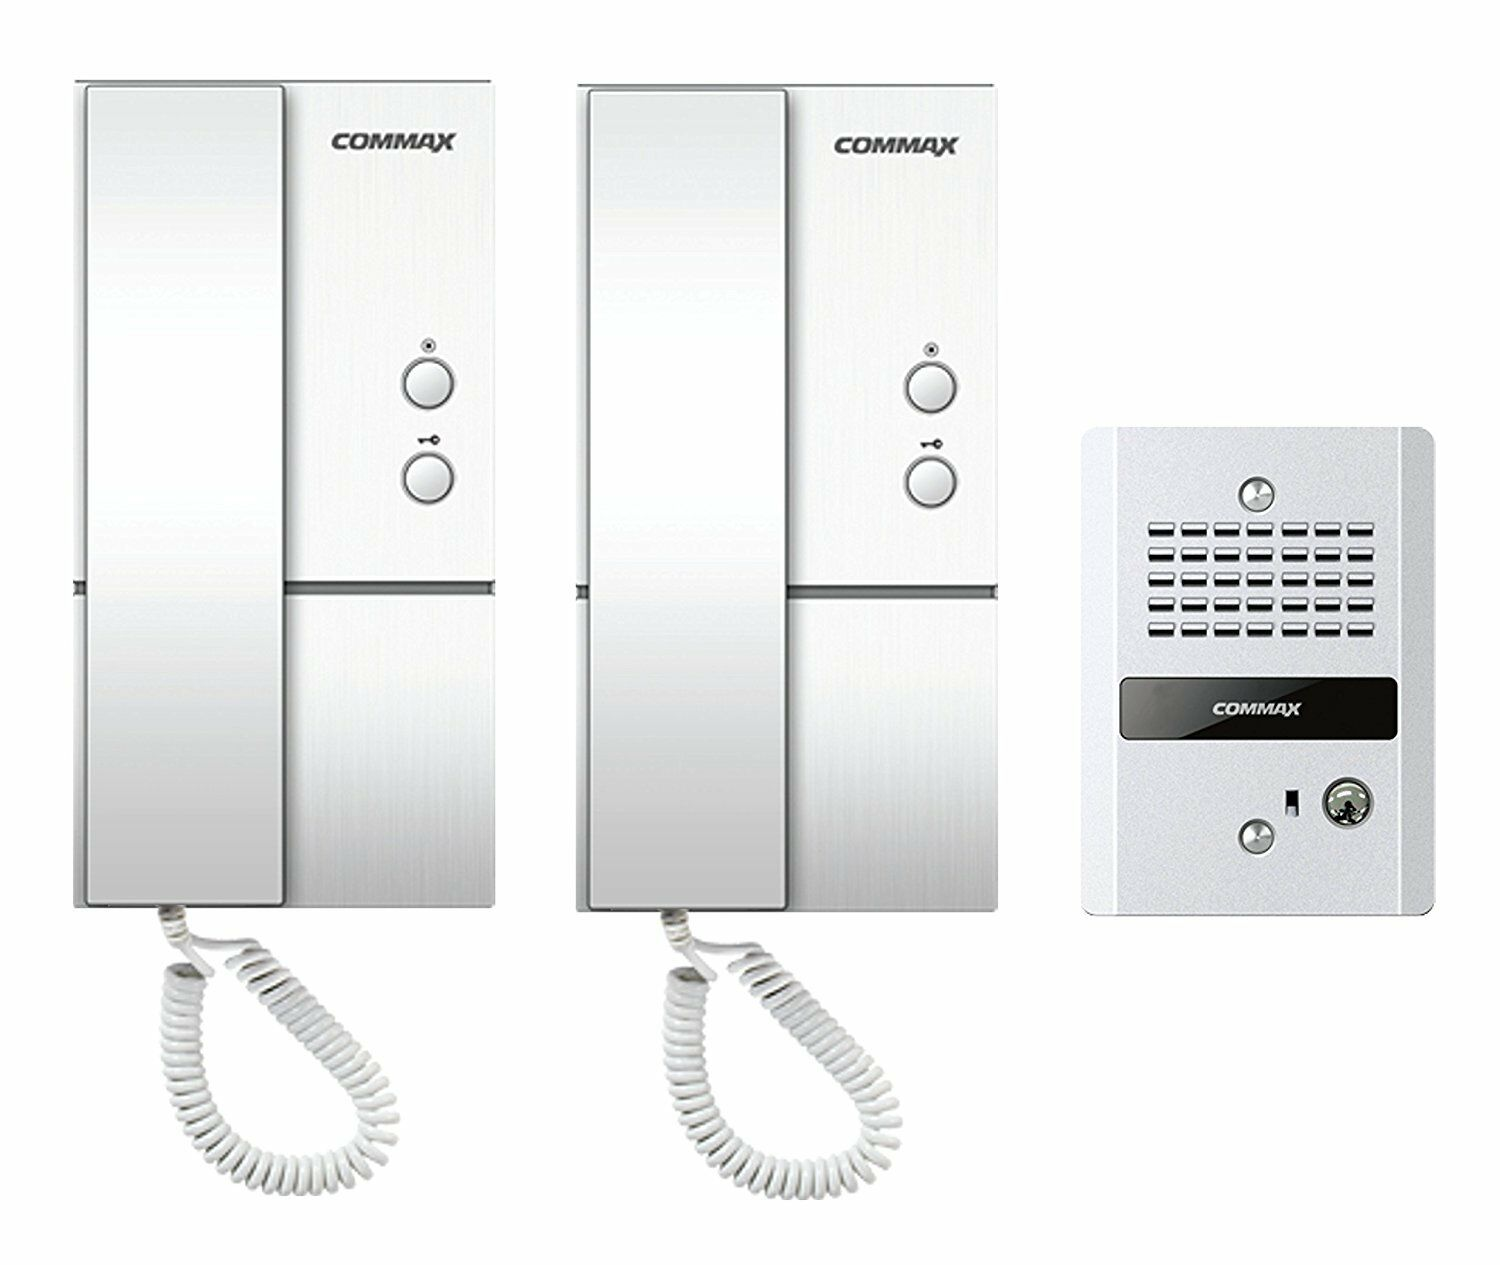 COMMAX 1 to 2 Audio Intercom with Vandal-proof Doorbell DP-LA01/DR-2GN